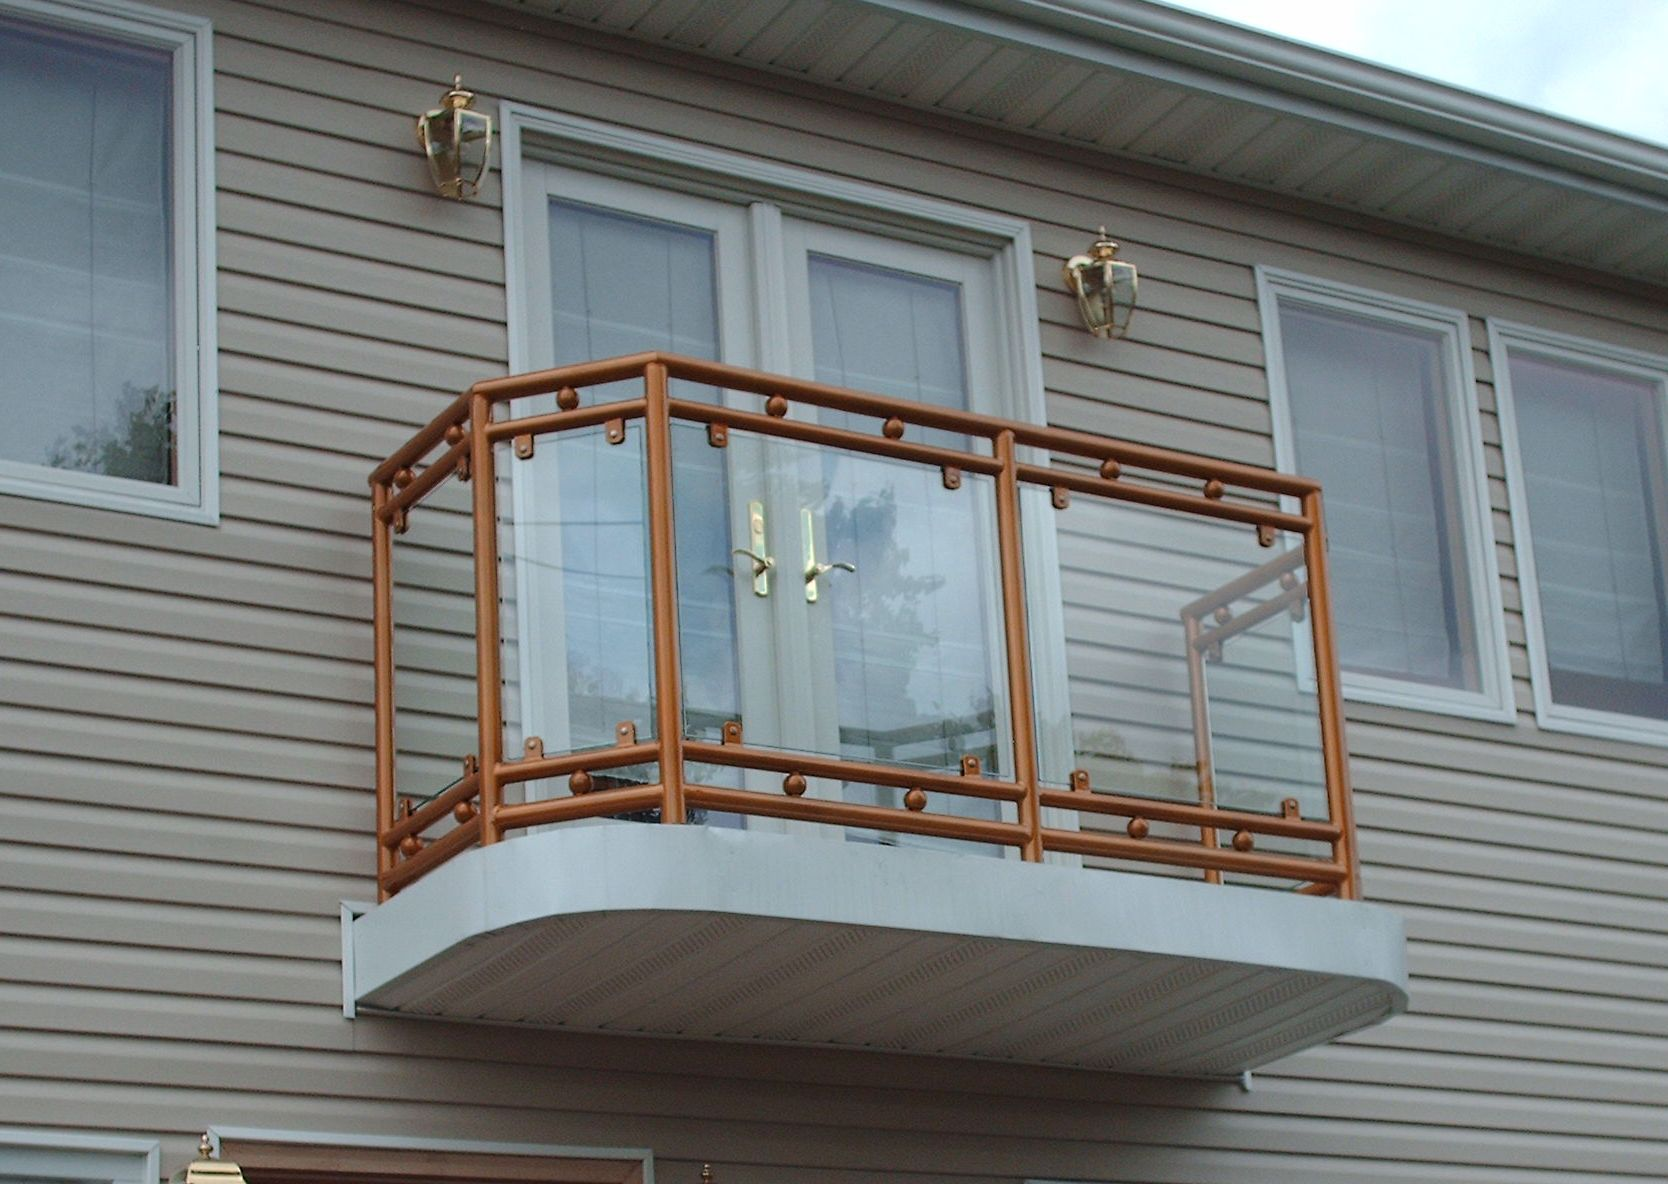 Guardian Gate Balcony Balconies Pinterest Balcony Design Balconies And Small Balcony Design